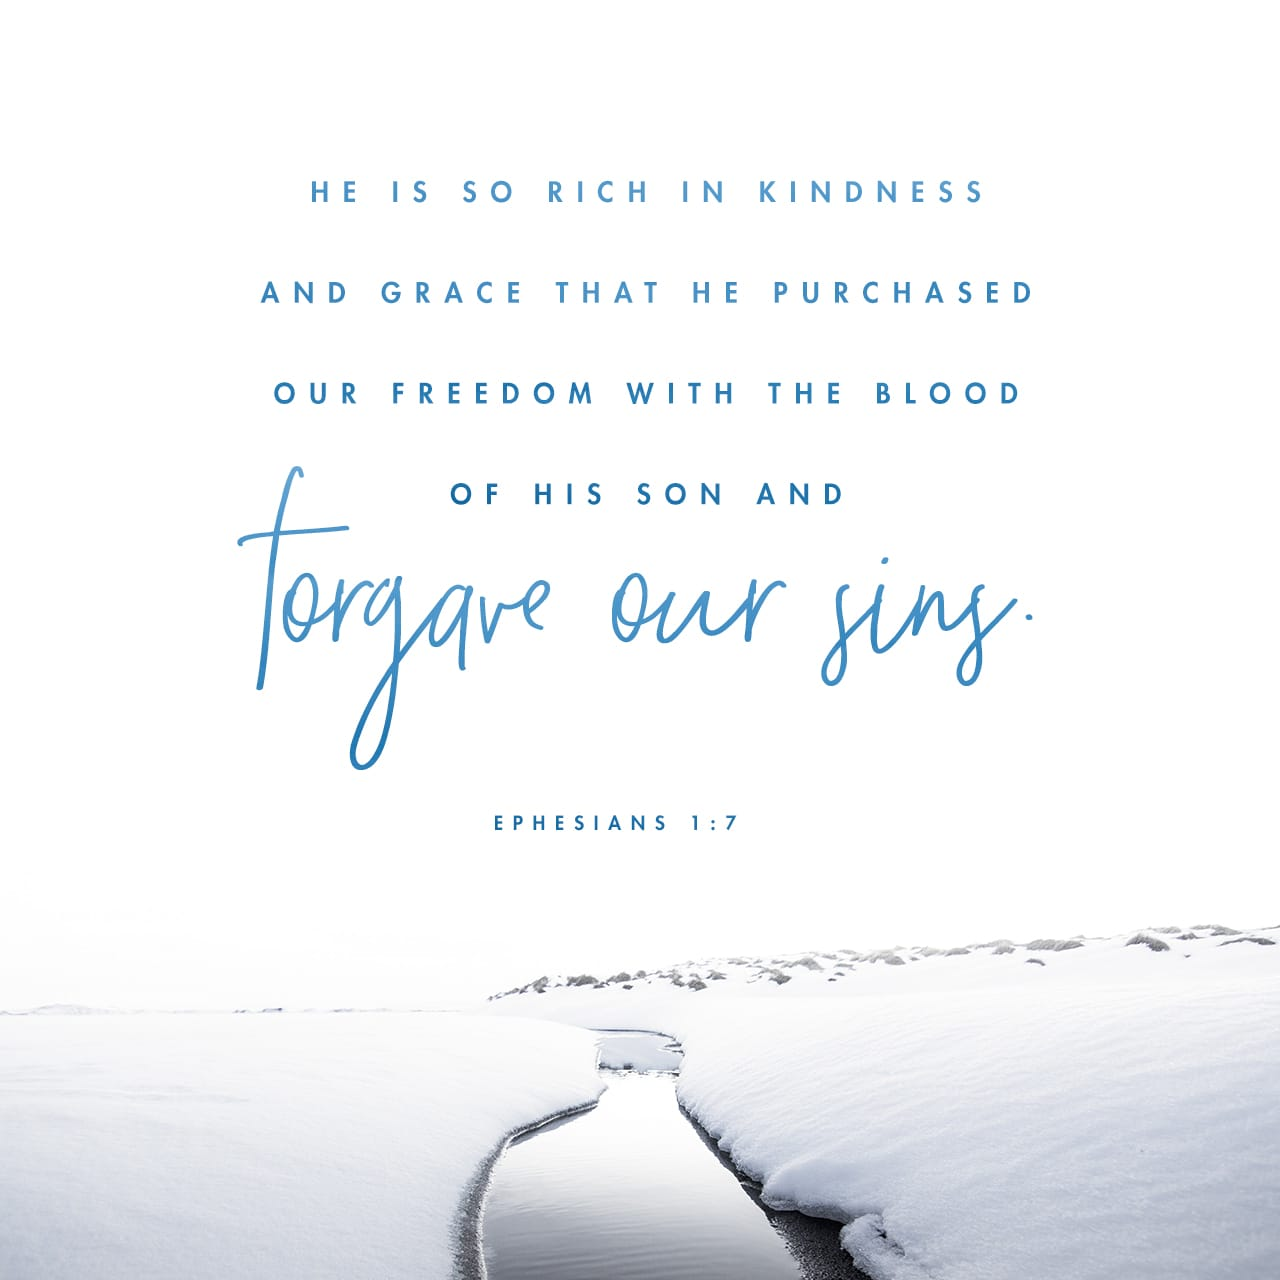 Ephesians 1:7 He is so rich in kindness and grace that he purchased our freedom with the blood of his Son and forgave our sins. | New Living Translation (NLT)